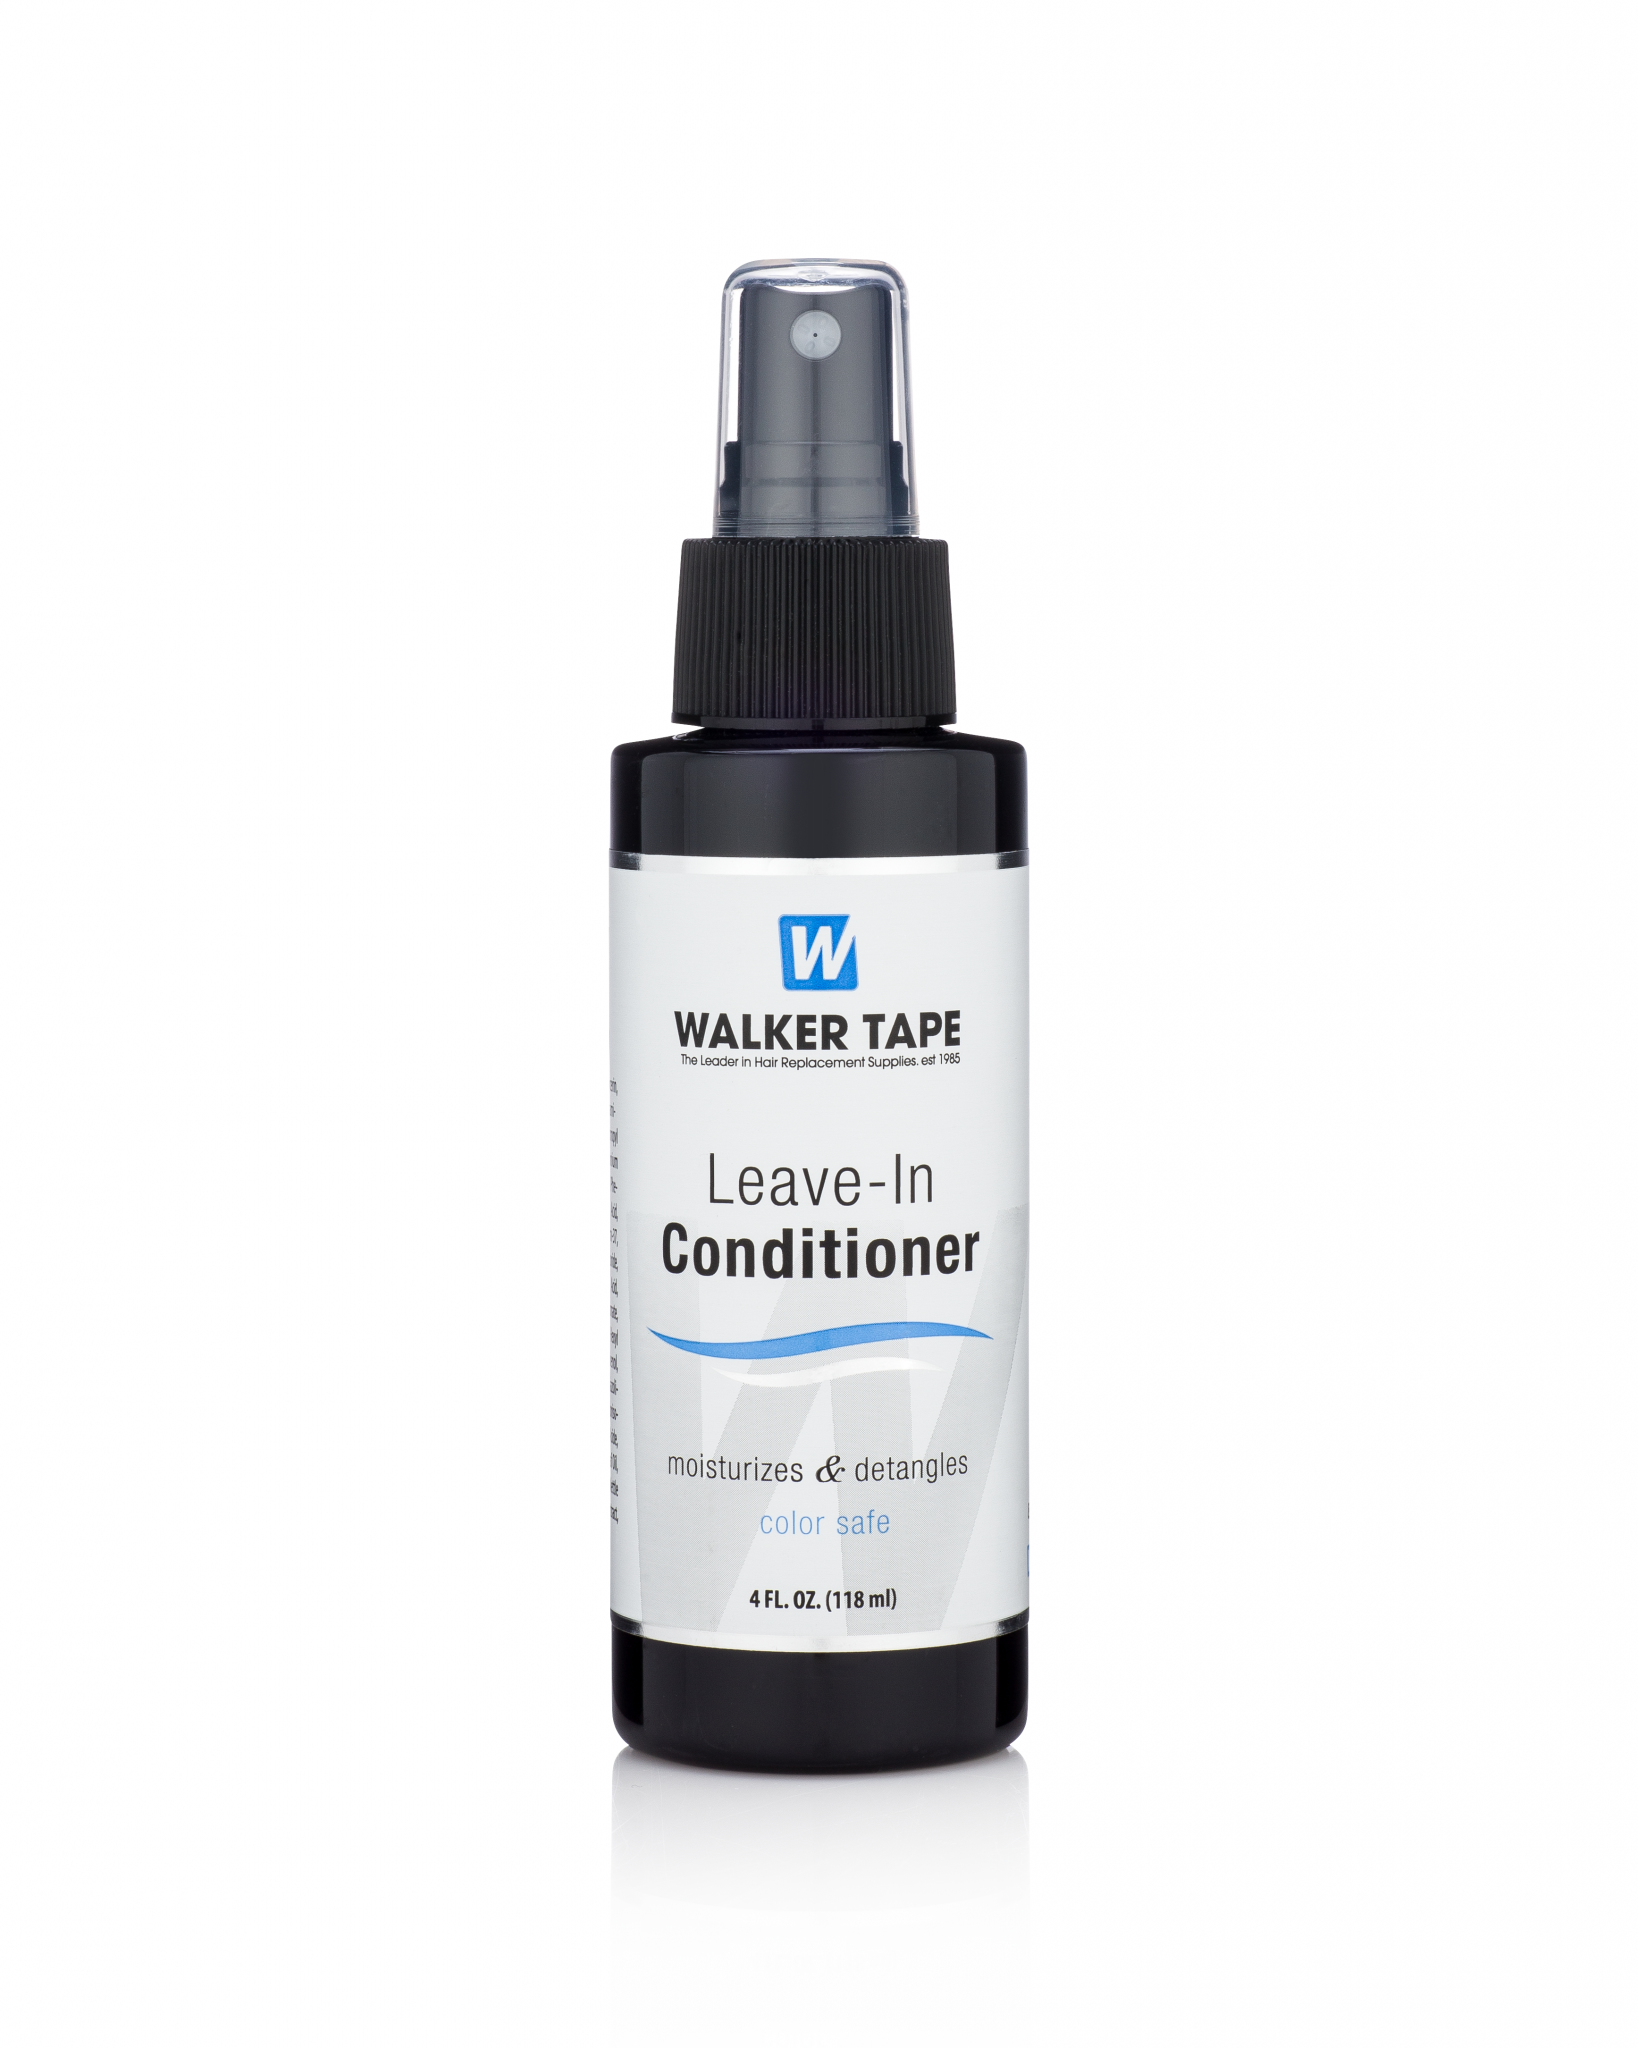 Walker leave-in conditioner